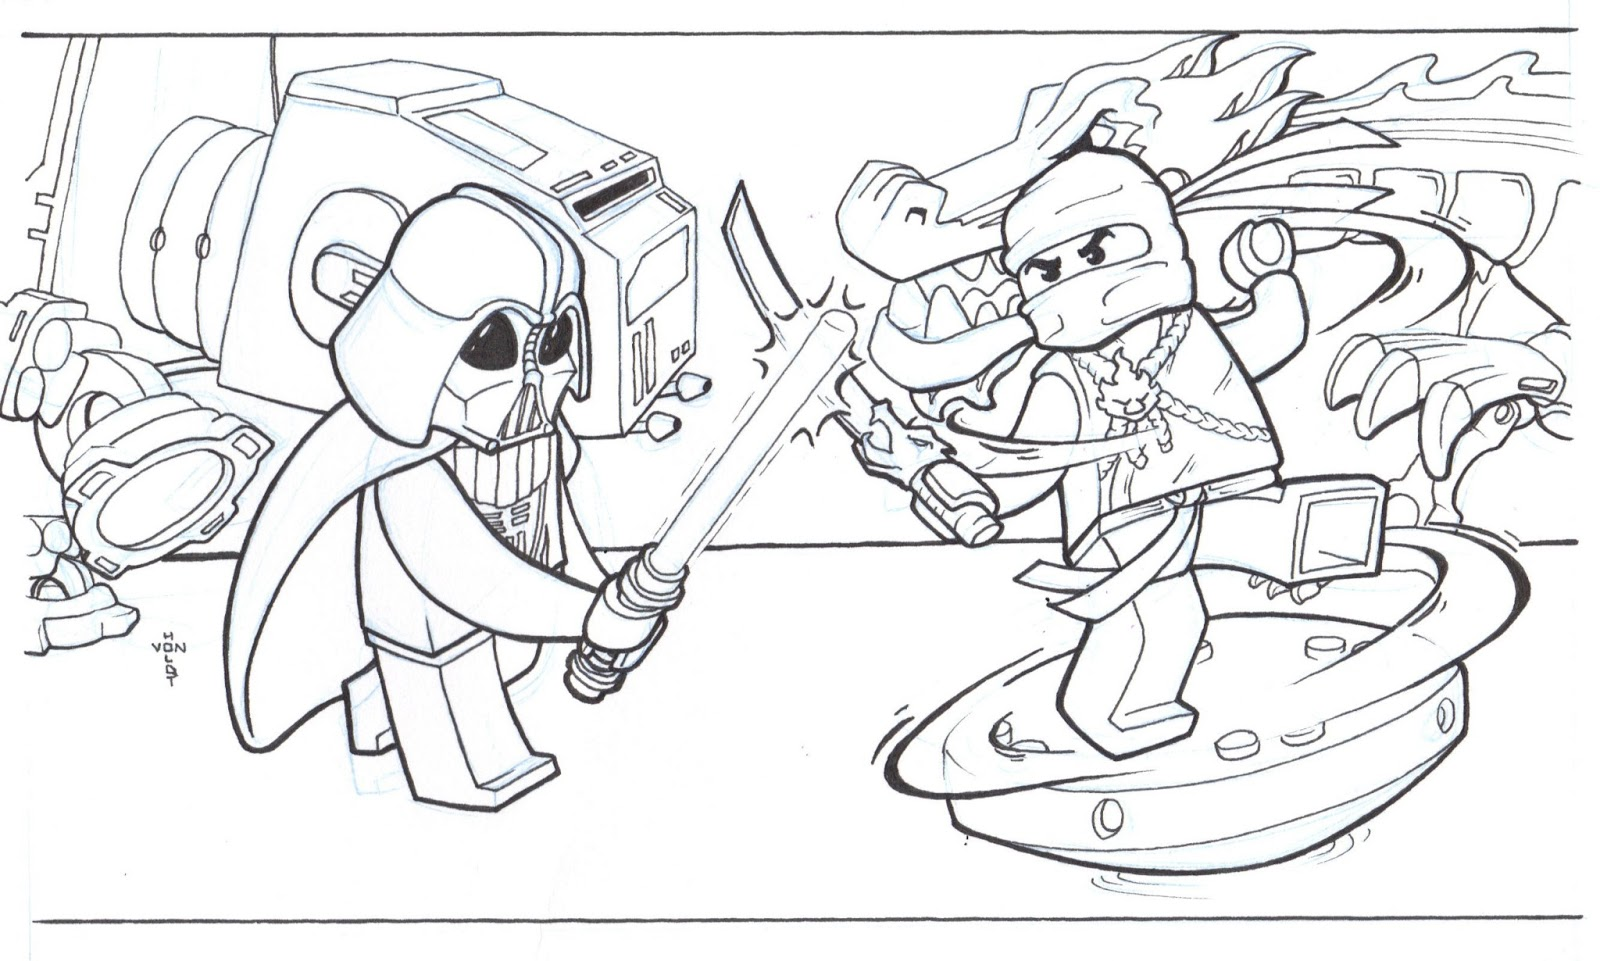 Lego ninjago coloring pages free printable pictures for Free printable lego coloring pages for kids